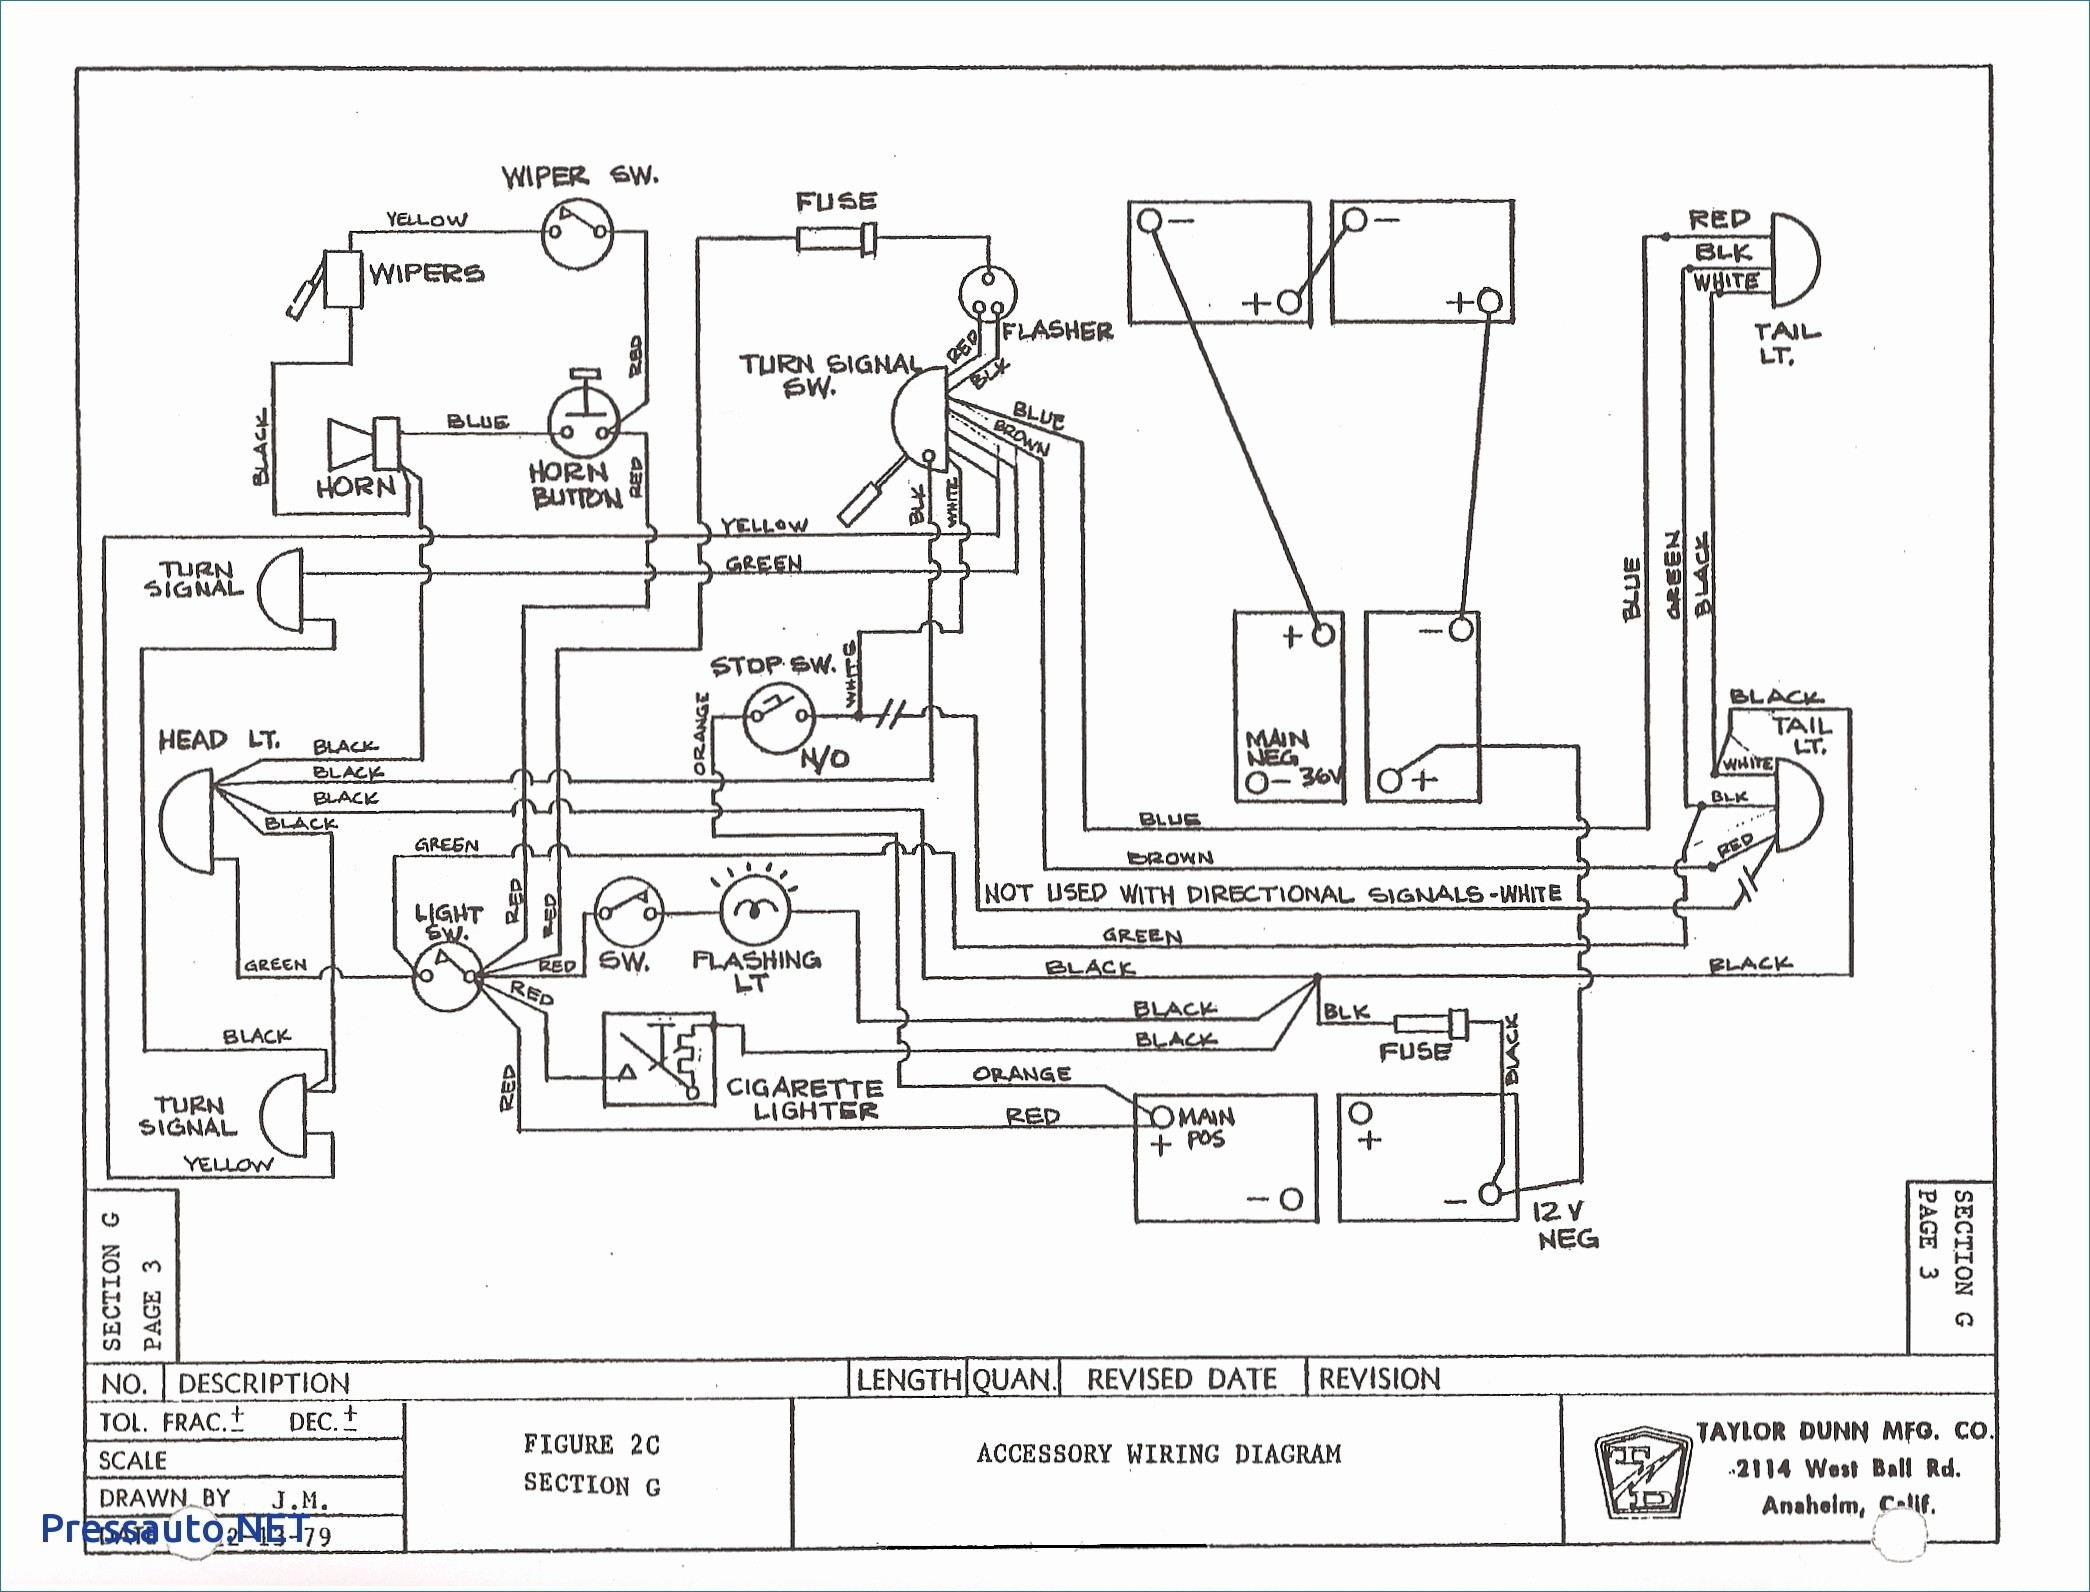 turn signal schematic diagram for ez go